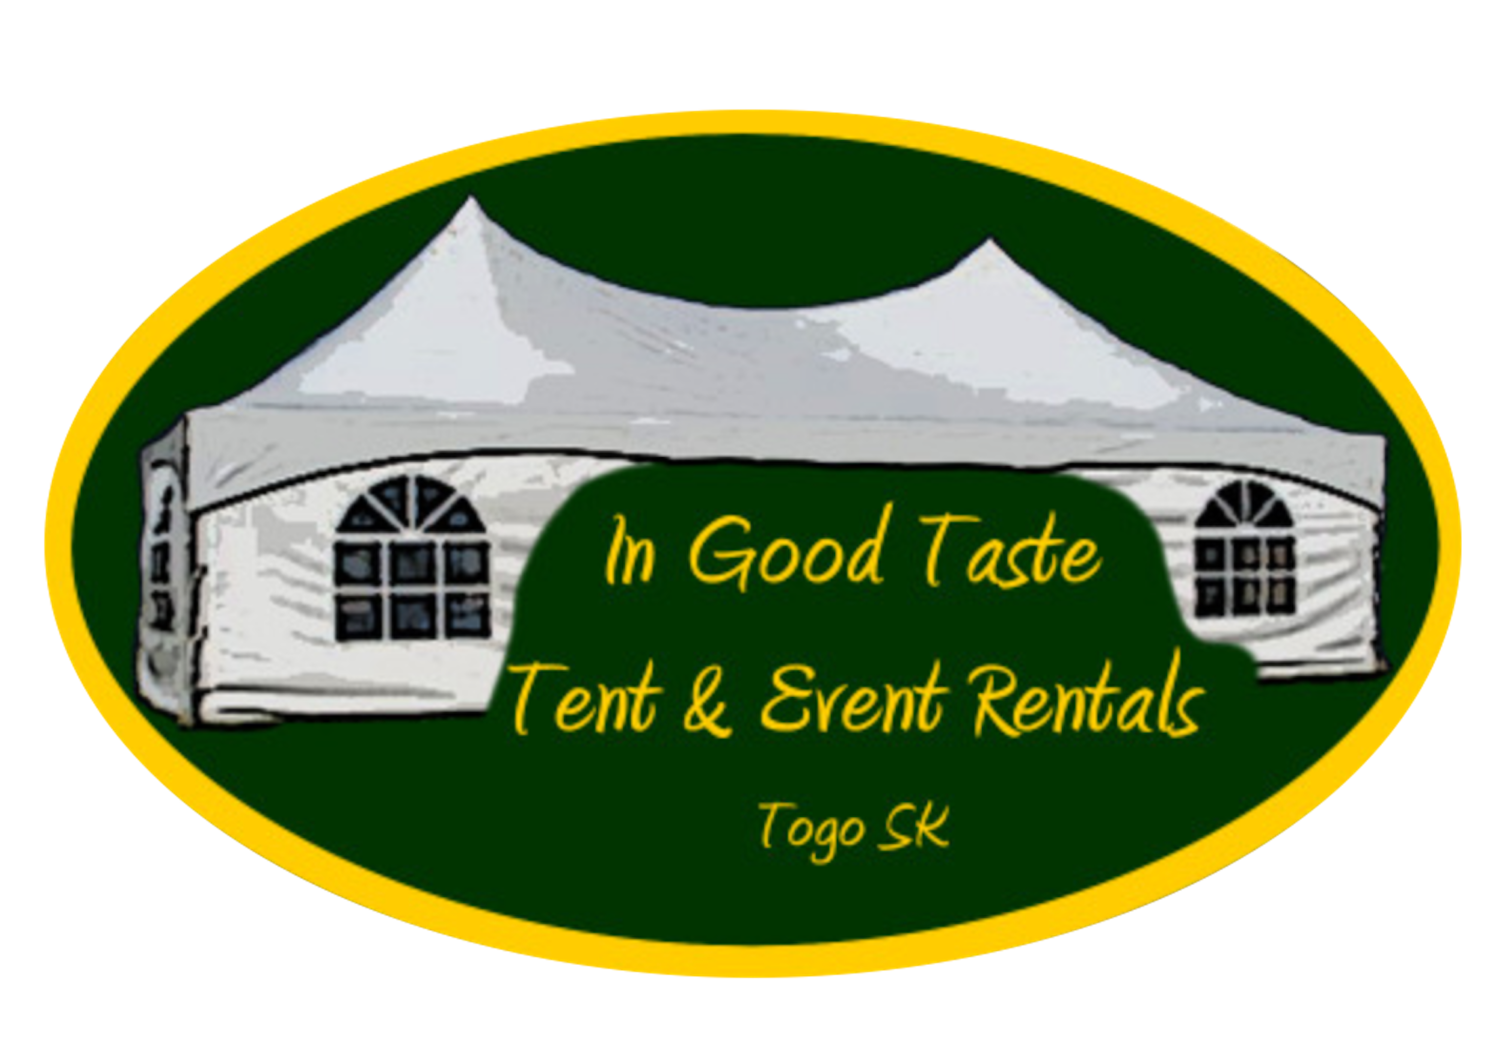 In Good Taste Tent and Event Rentals